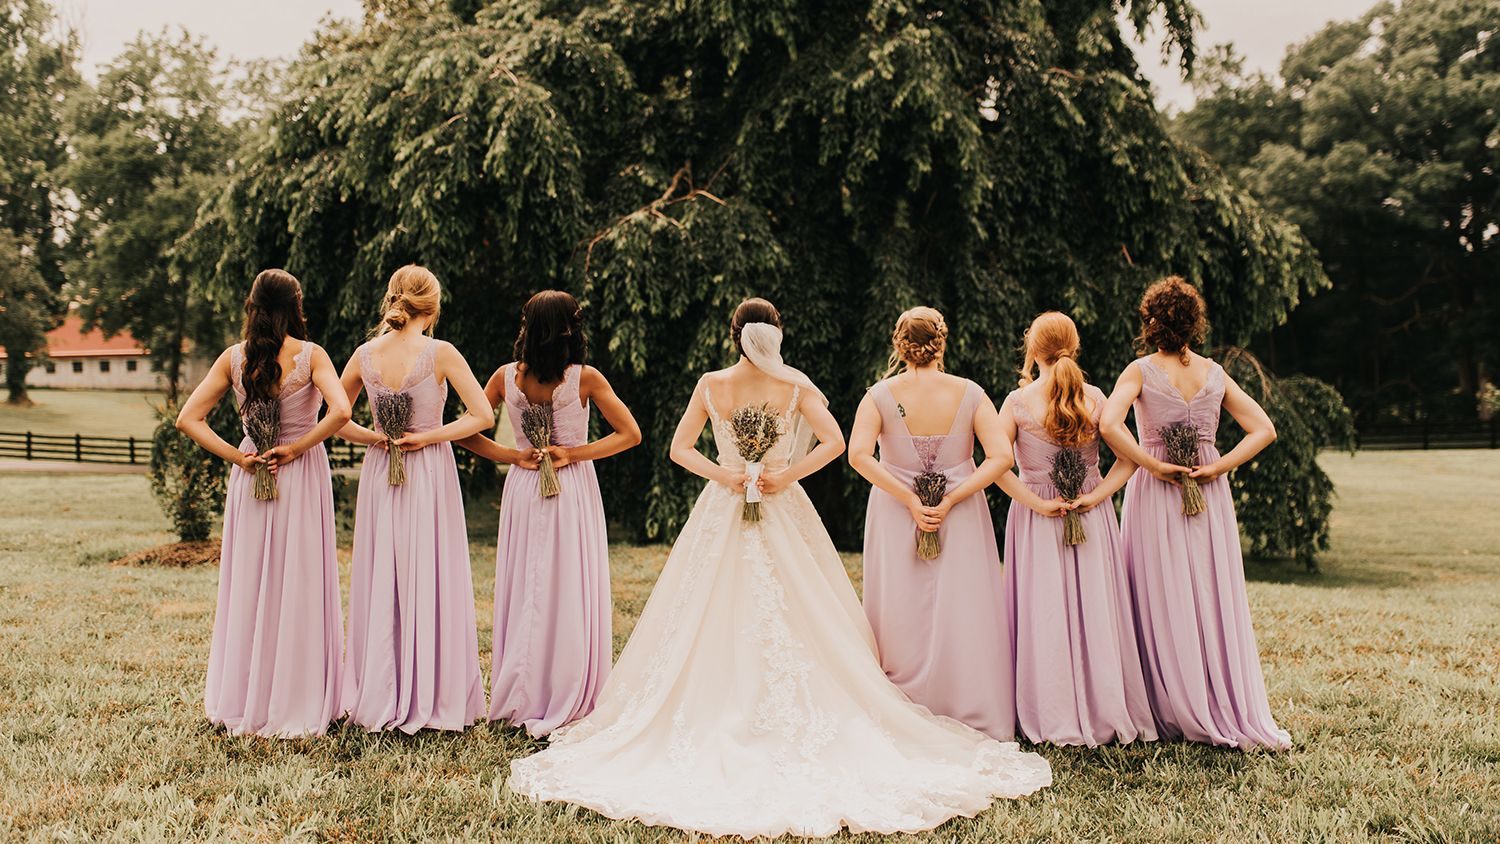 Bride With Bridesmaids Holding Flowers Field